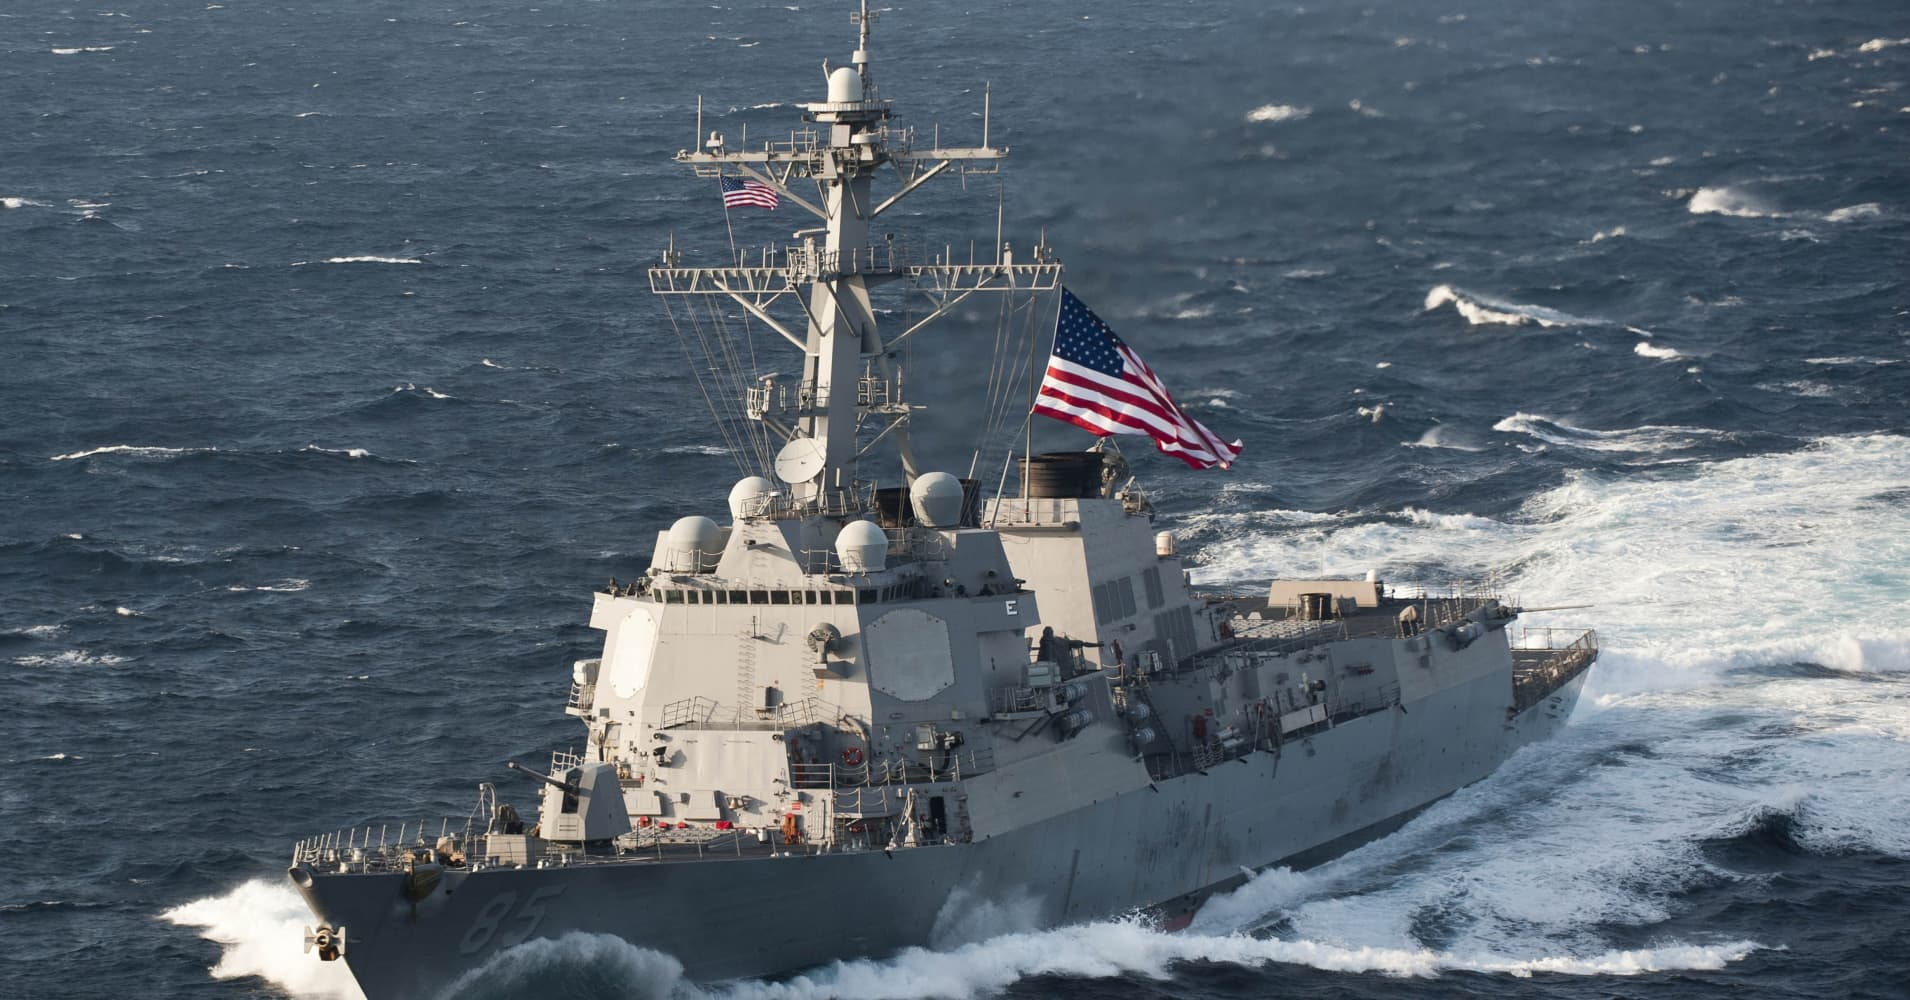 The USS McCampbell moves into formation during a trilateral exercise in the East China Sea, East China Sea, 2012.